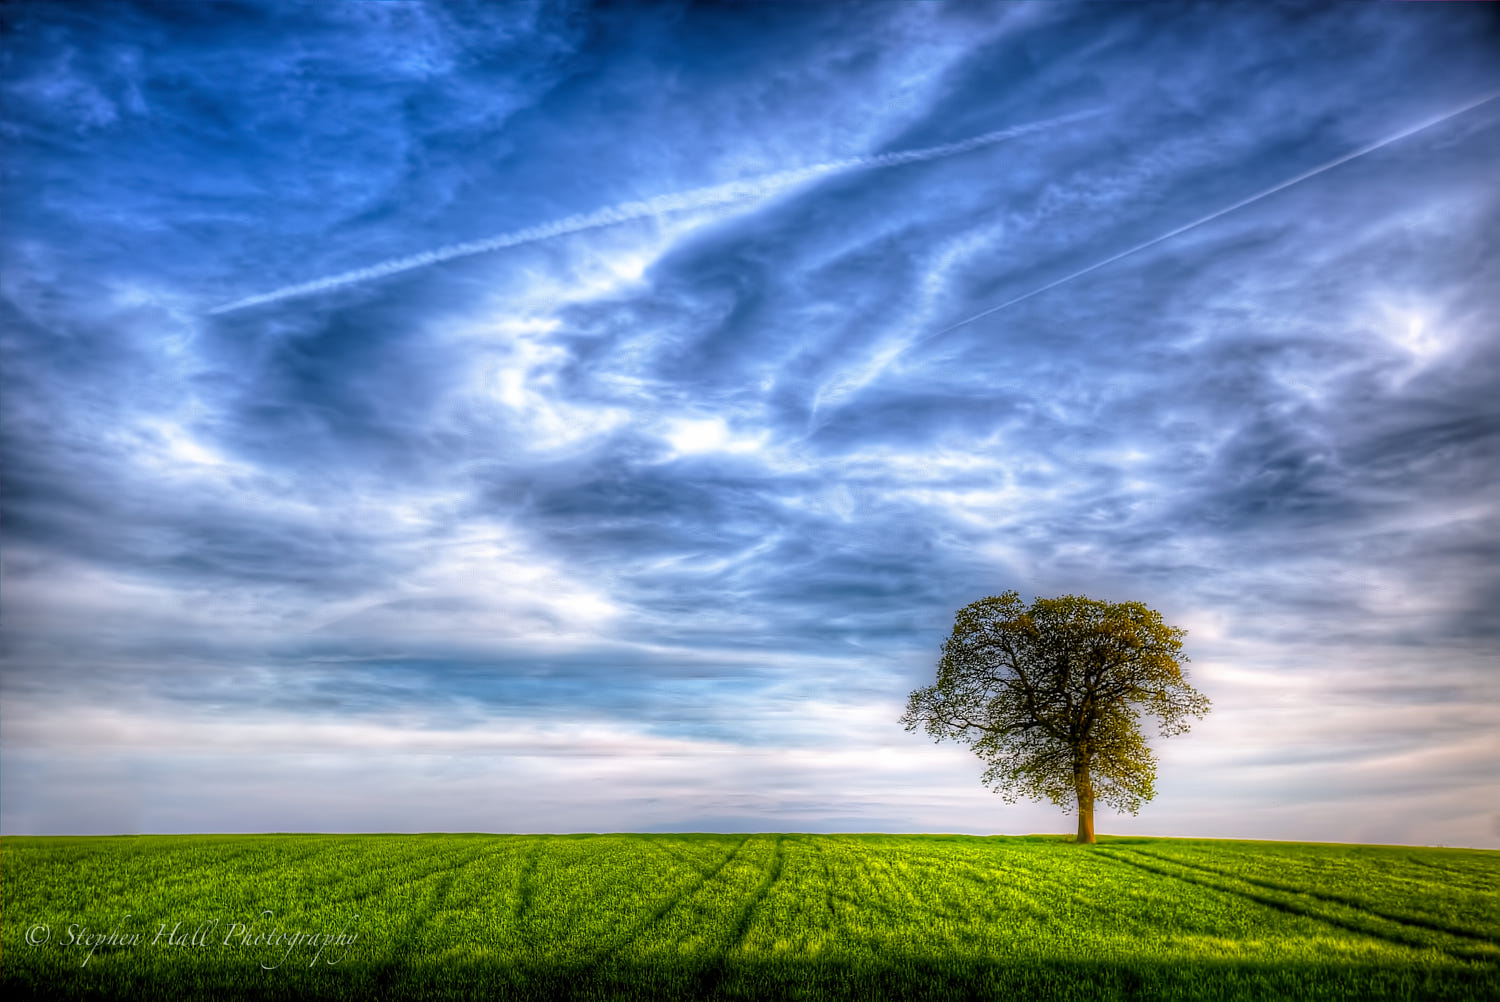 solitary tree photography welcome world stephen hall